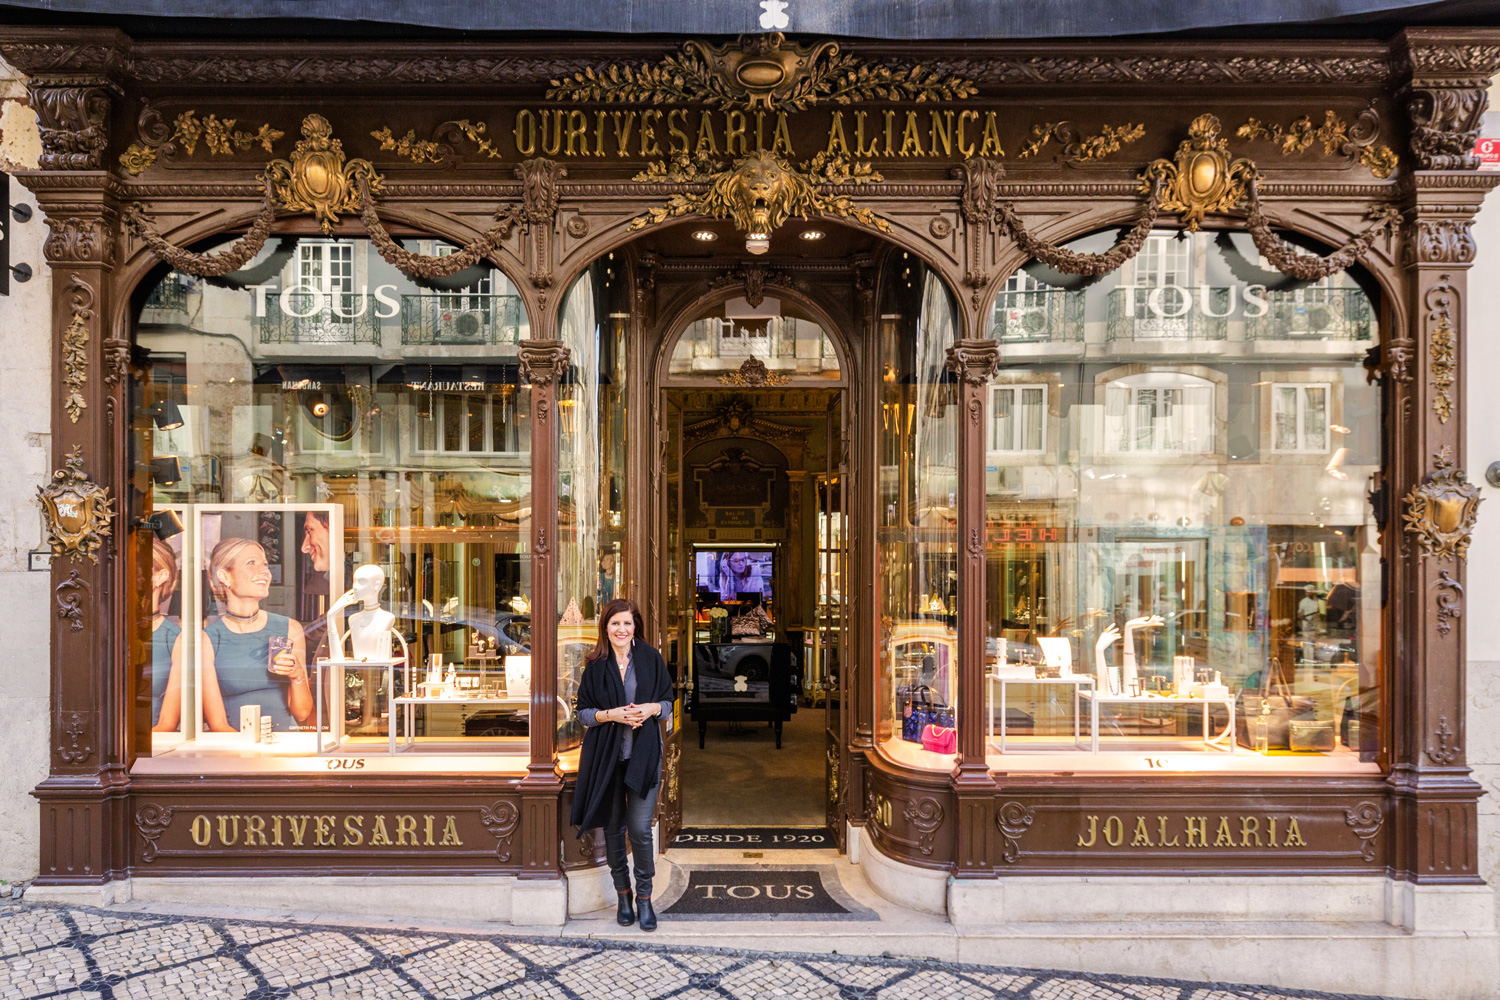 Lubelia Marques, manager for Portugal of the jewelry company Tous, at the door of the brand's local flagship store